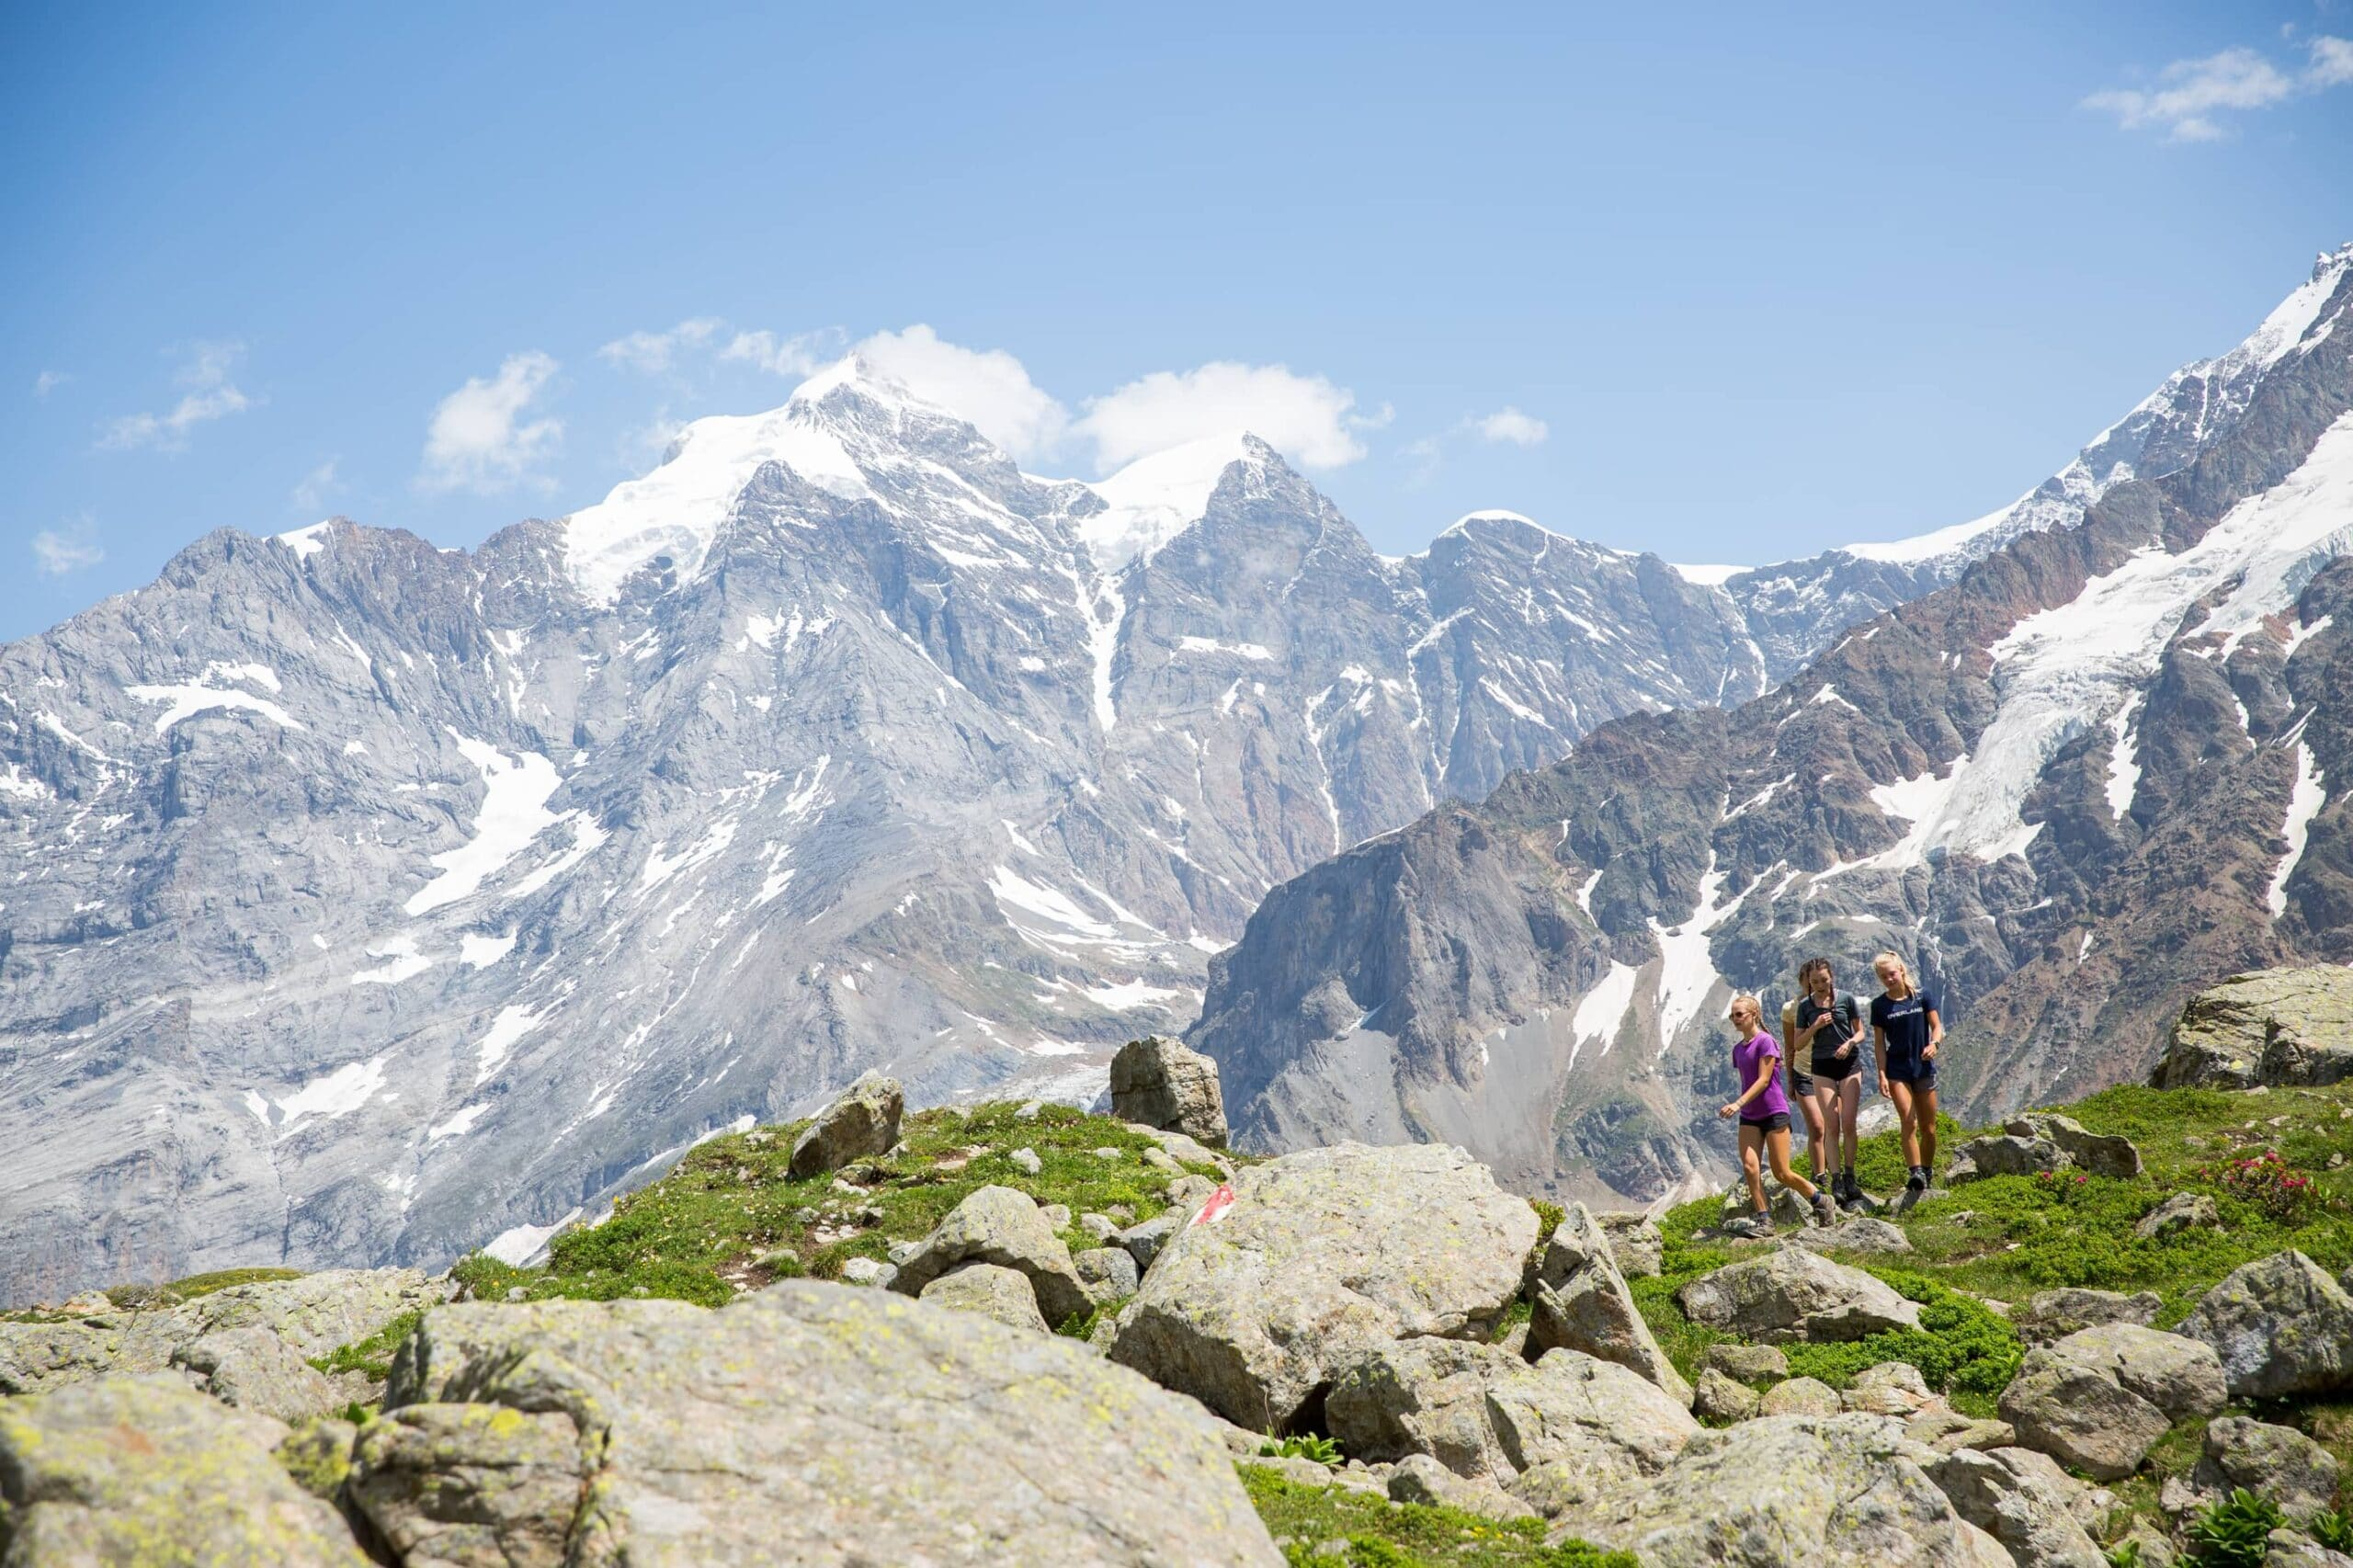 Group of teenager pose for a photo while on a hiking trip in the Swiss Alps this Summer